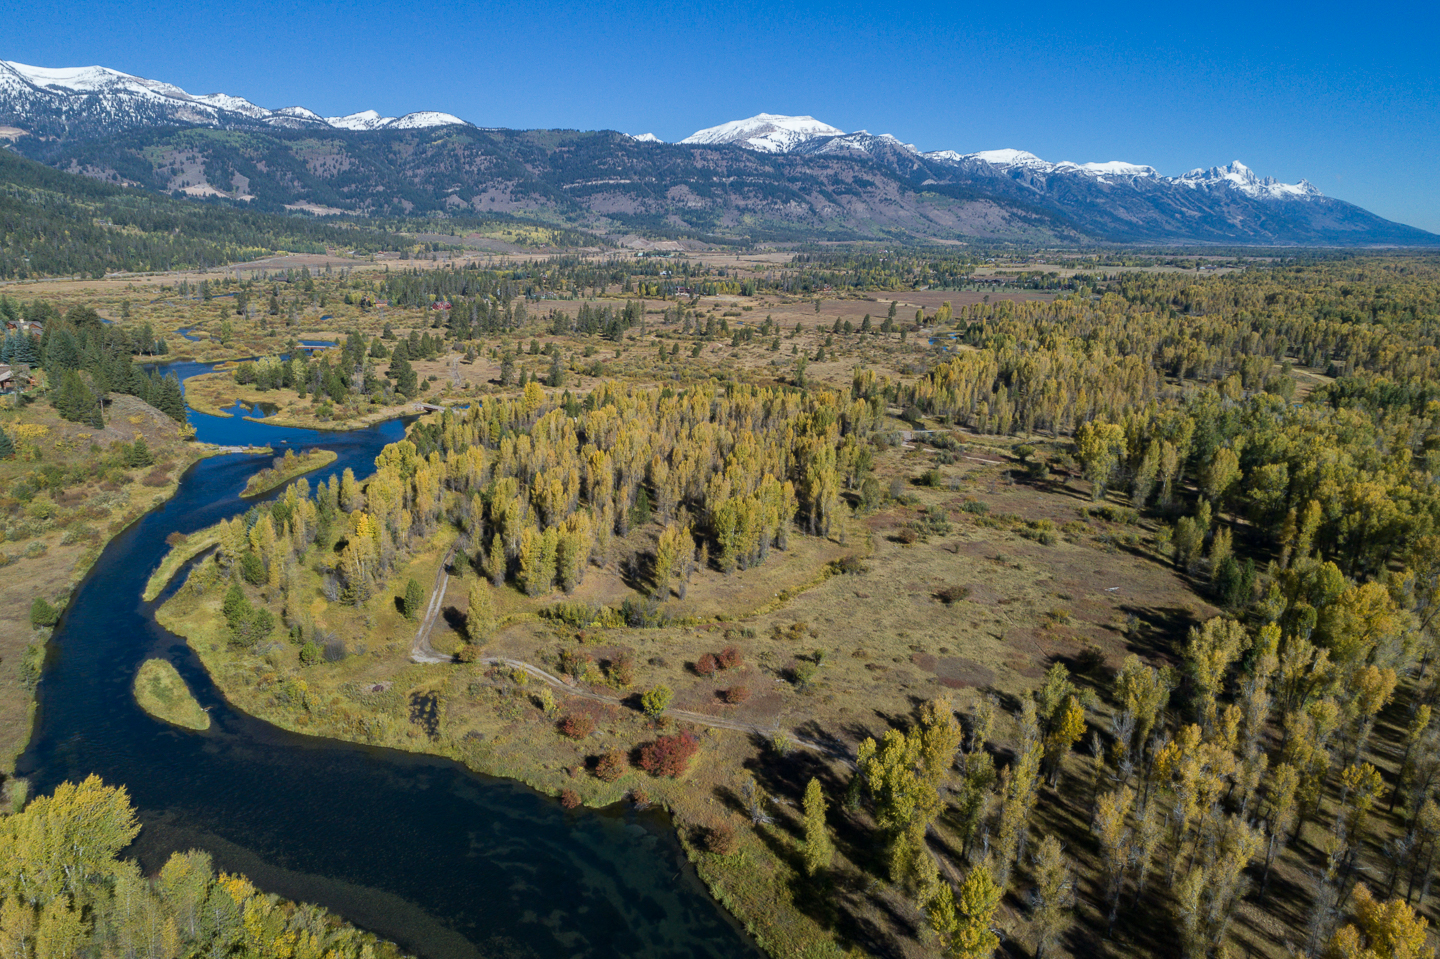 15 Fall Day Drone Looking NW of Fish Creek, Lot + Mountains.jpg